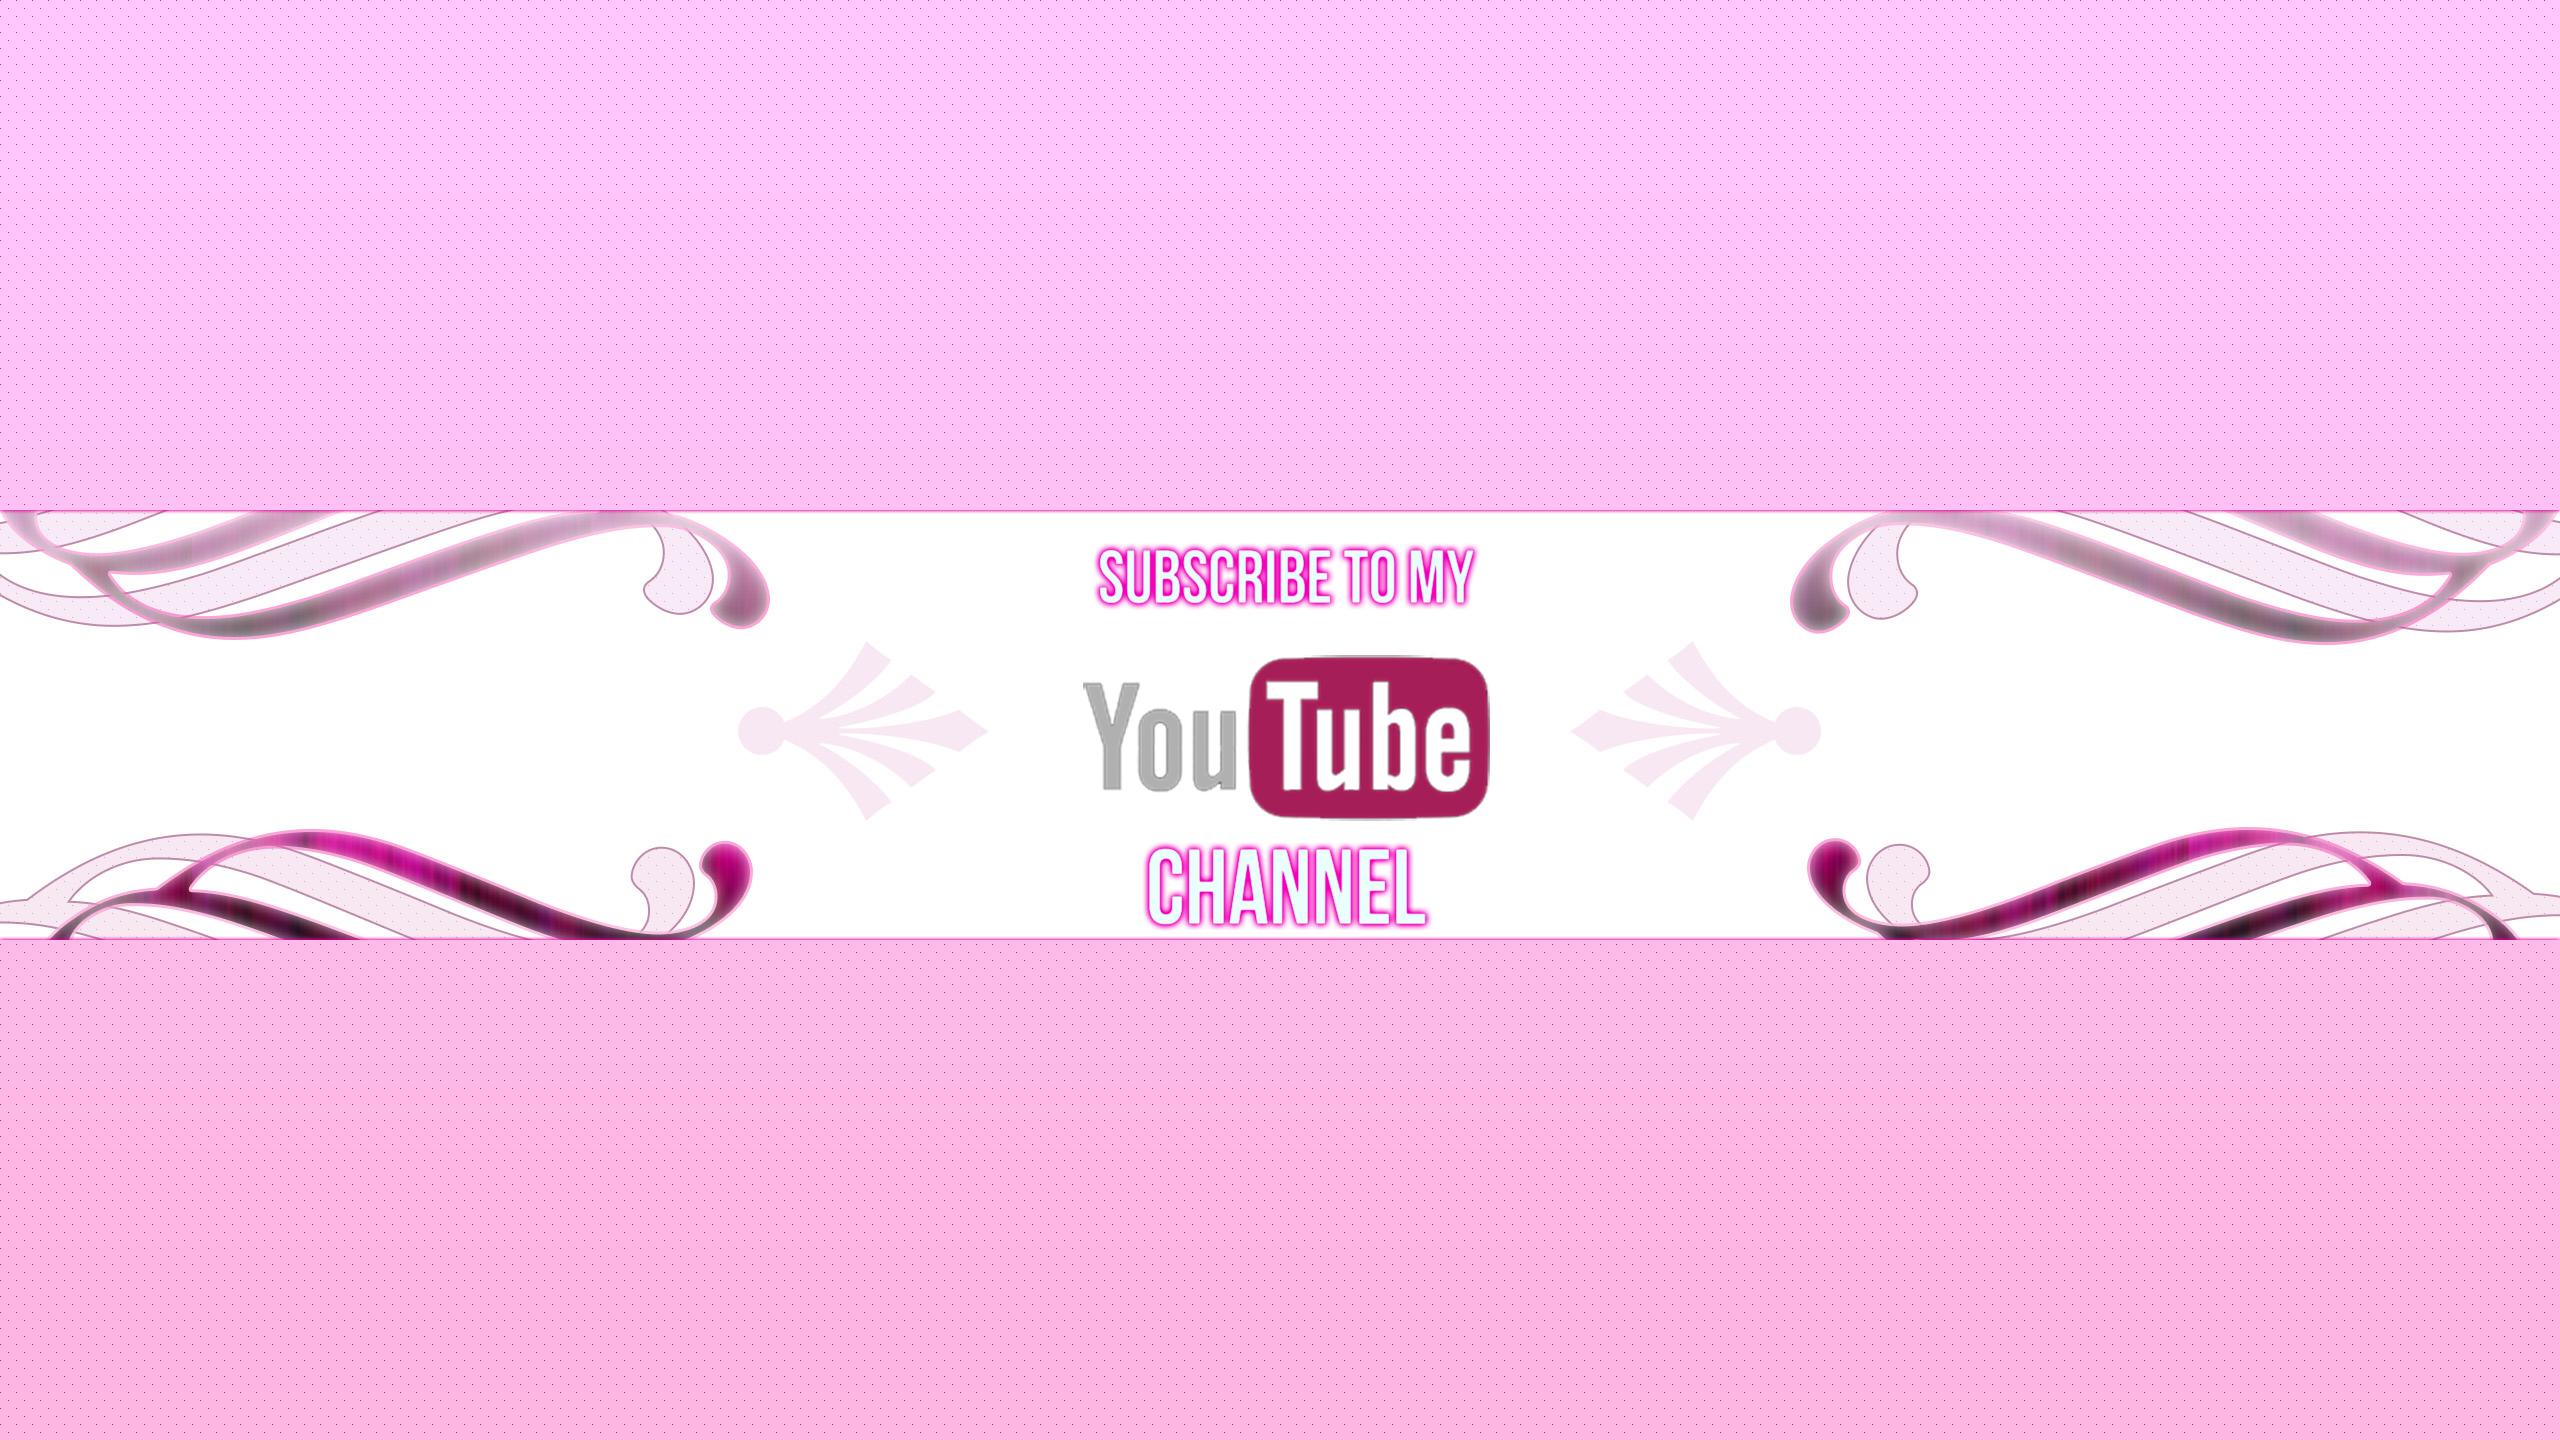 Backgrounds For Girly Youtube Channel Art Backgrounds | www ...